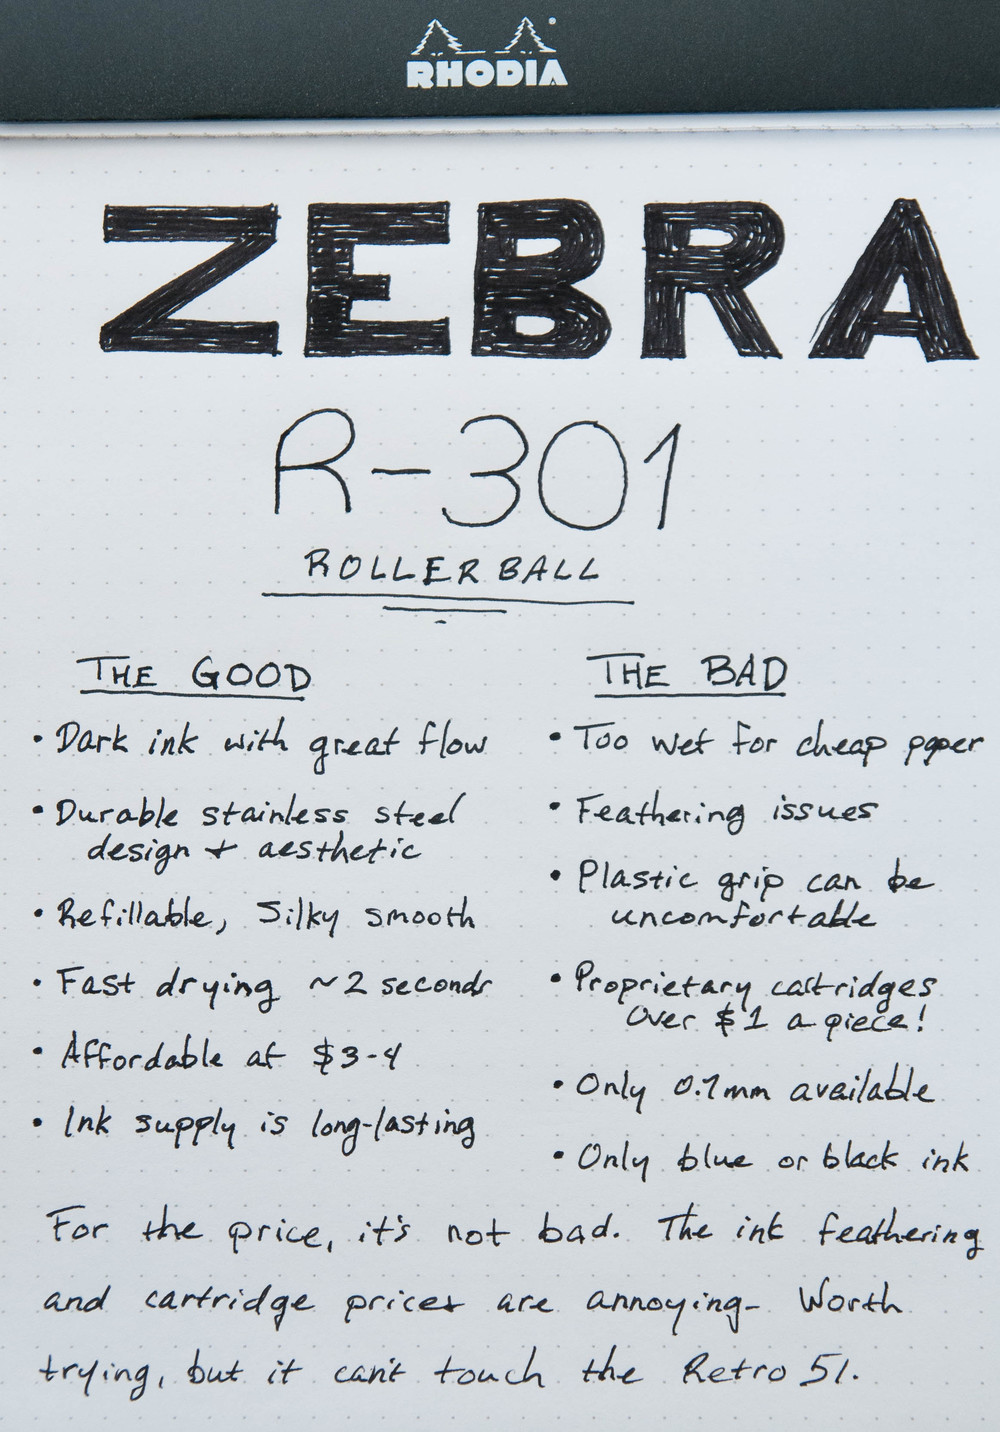 Zebra R-301 Review.jpg